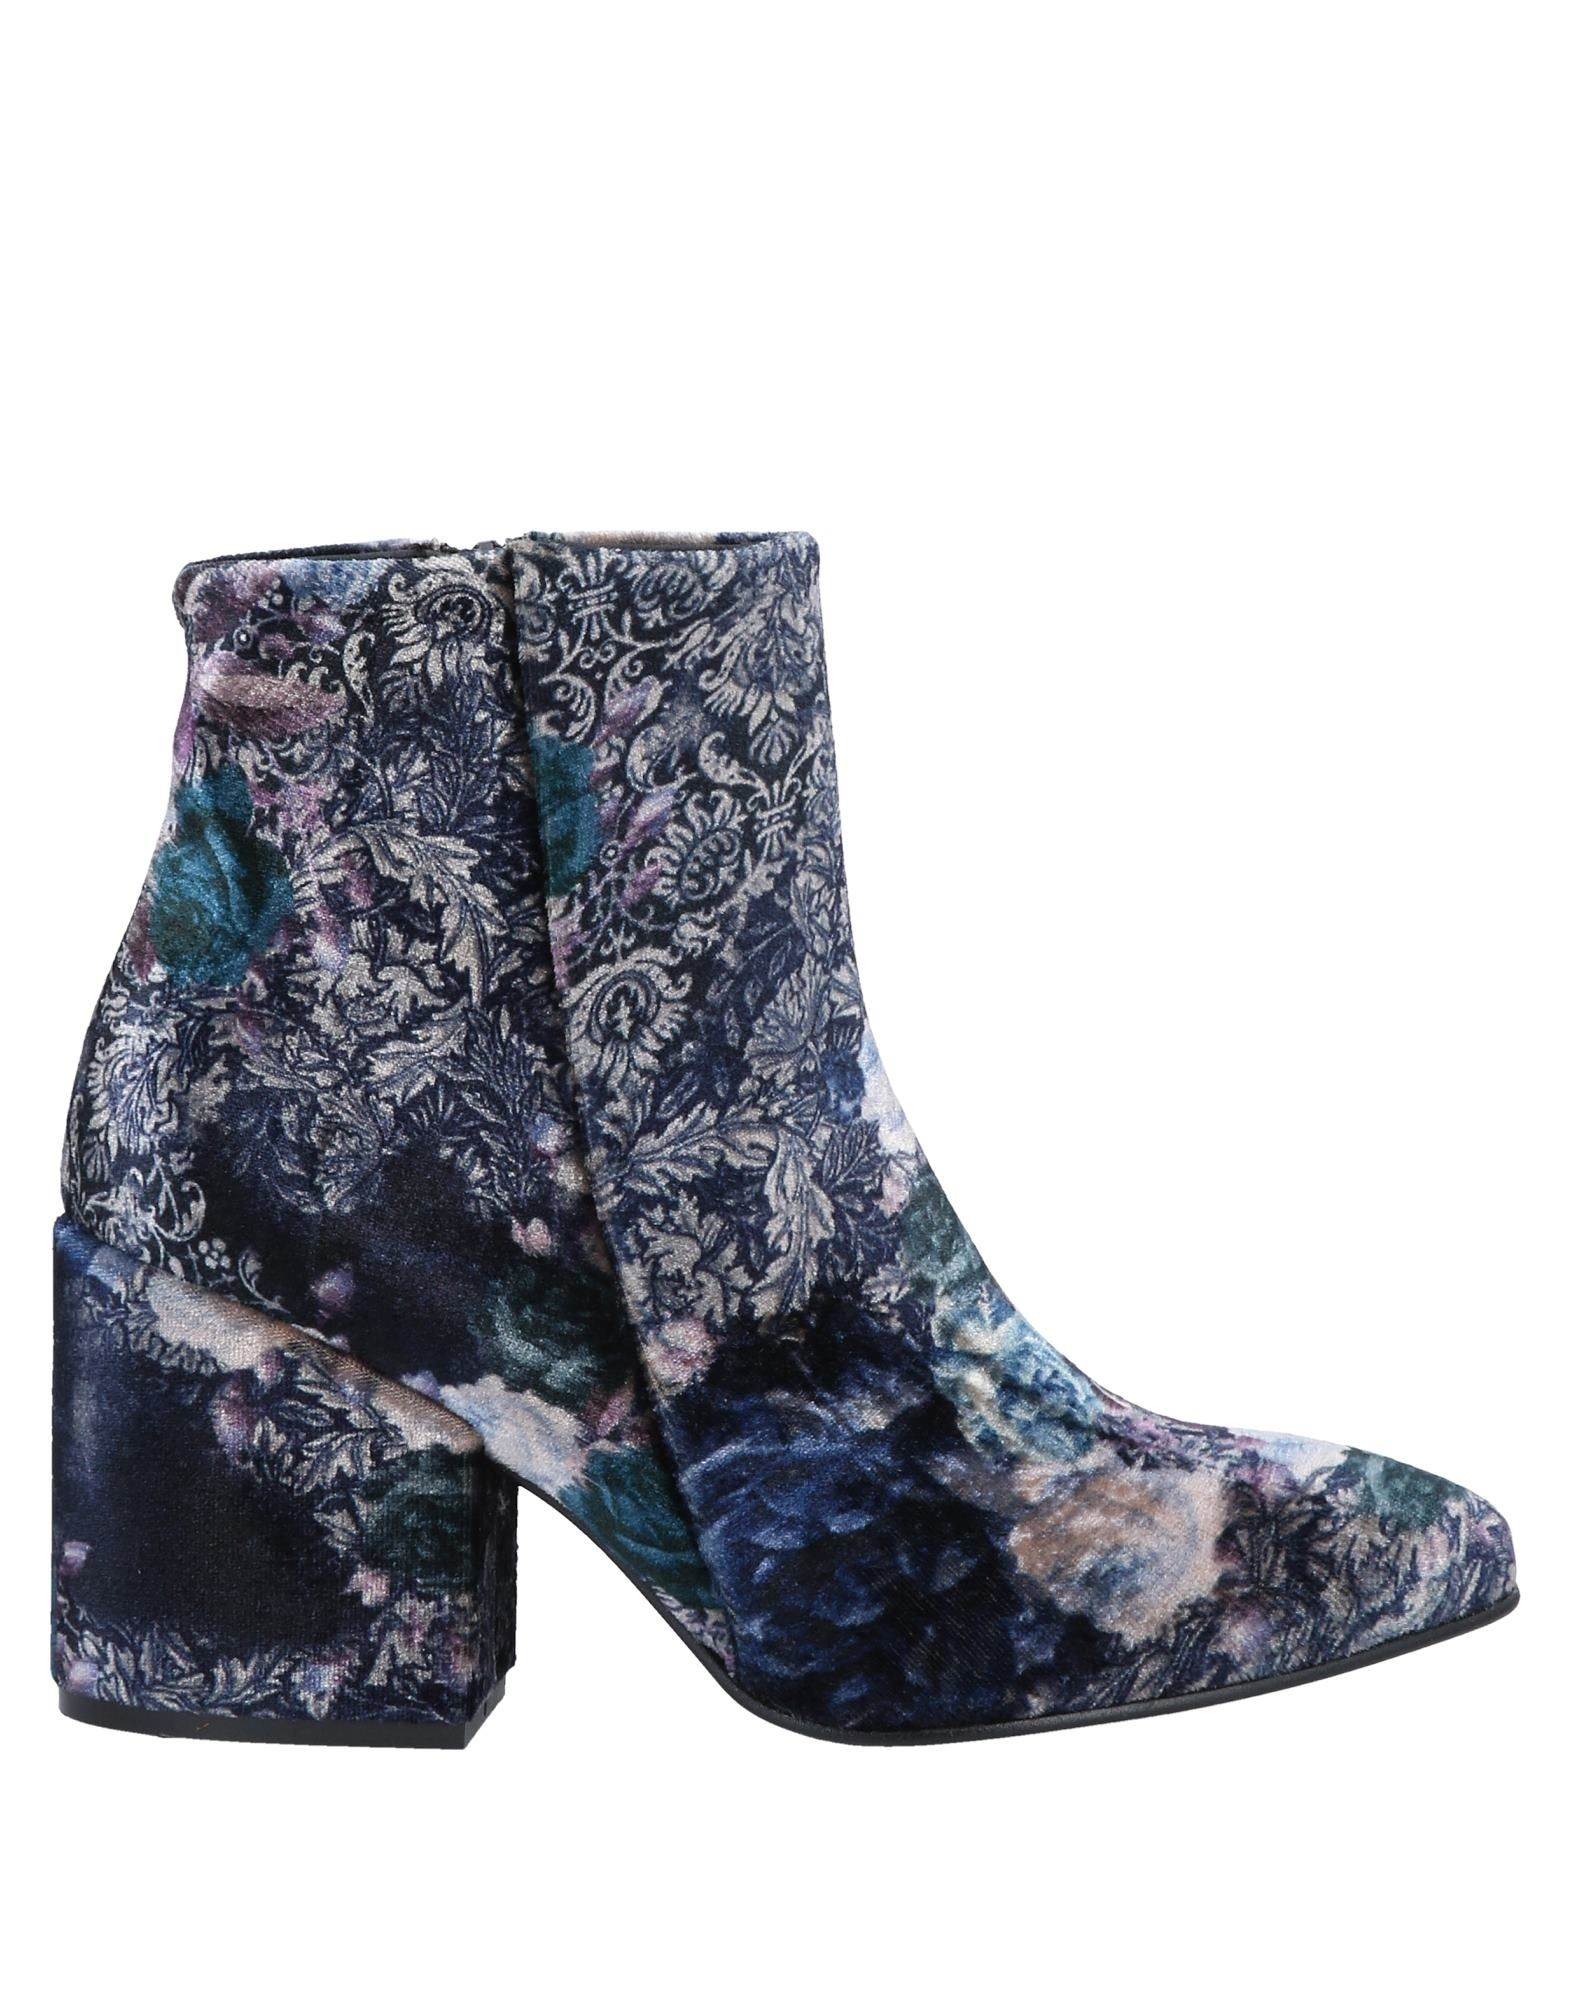 Tosca Blu Shoes Ankle Boot - Women Tosca Blu Shoes Ankle Ankle Shoes Boots online on  United Kingdom - 11556775JB 7a81ca